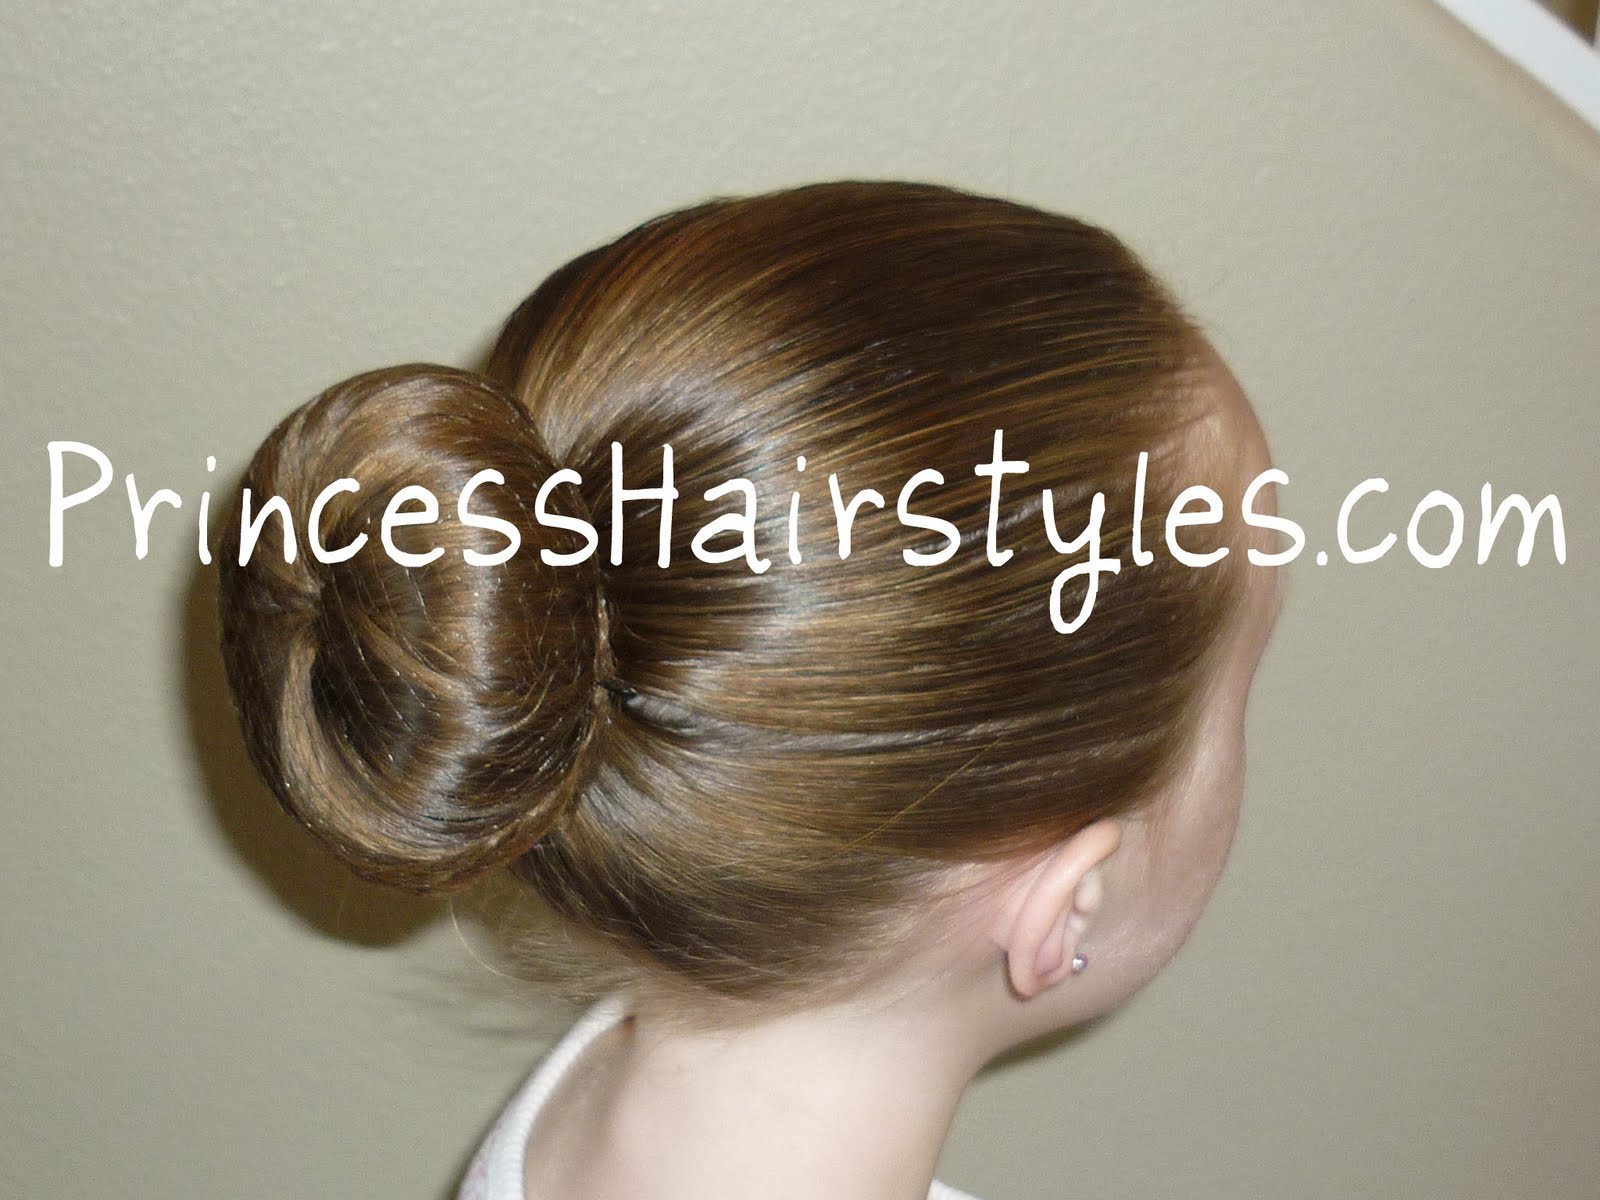 Admirable The Perfect Ballet Bun Hairstyles For Girls Princess Hairstyles Hairstyles For Women Draintrainus